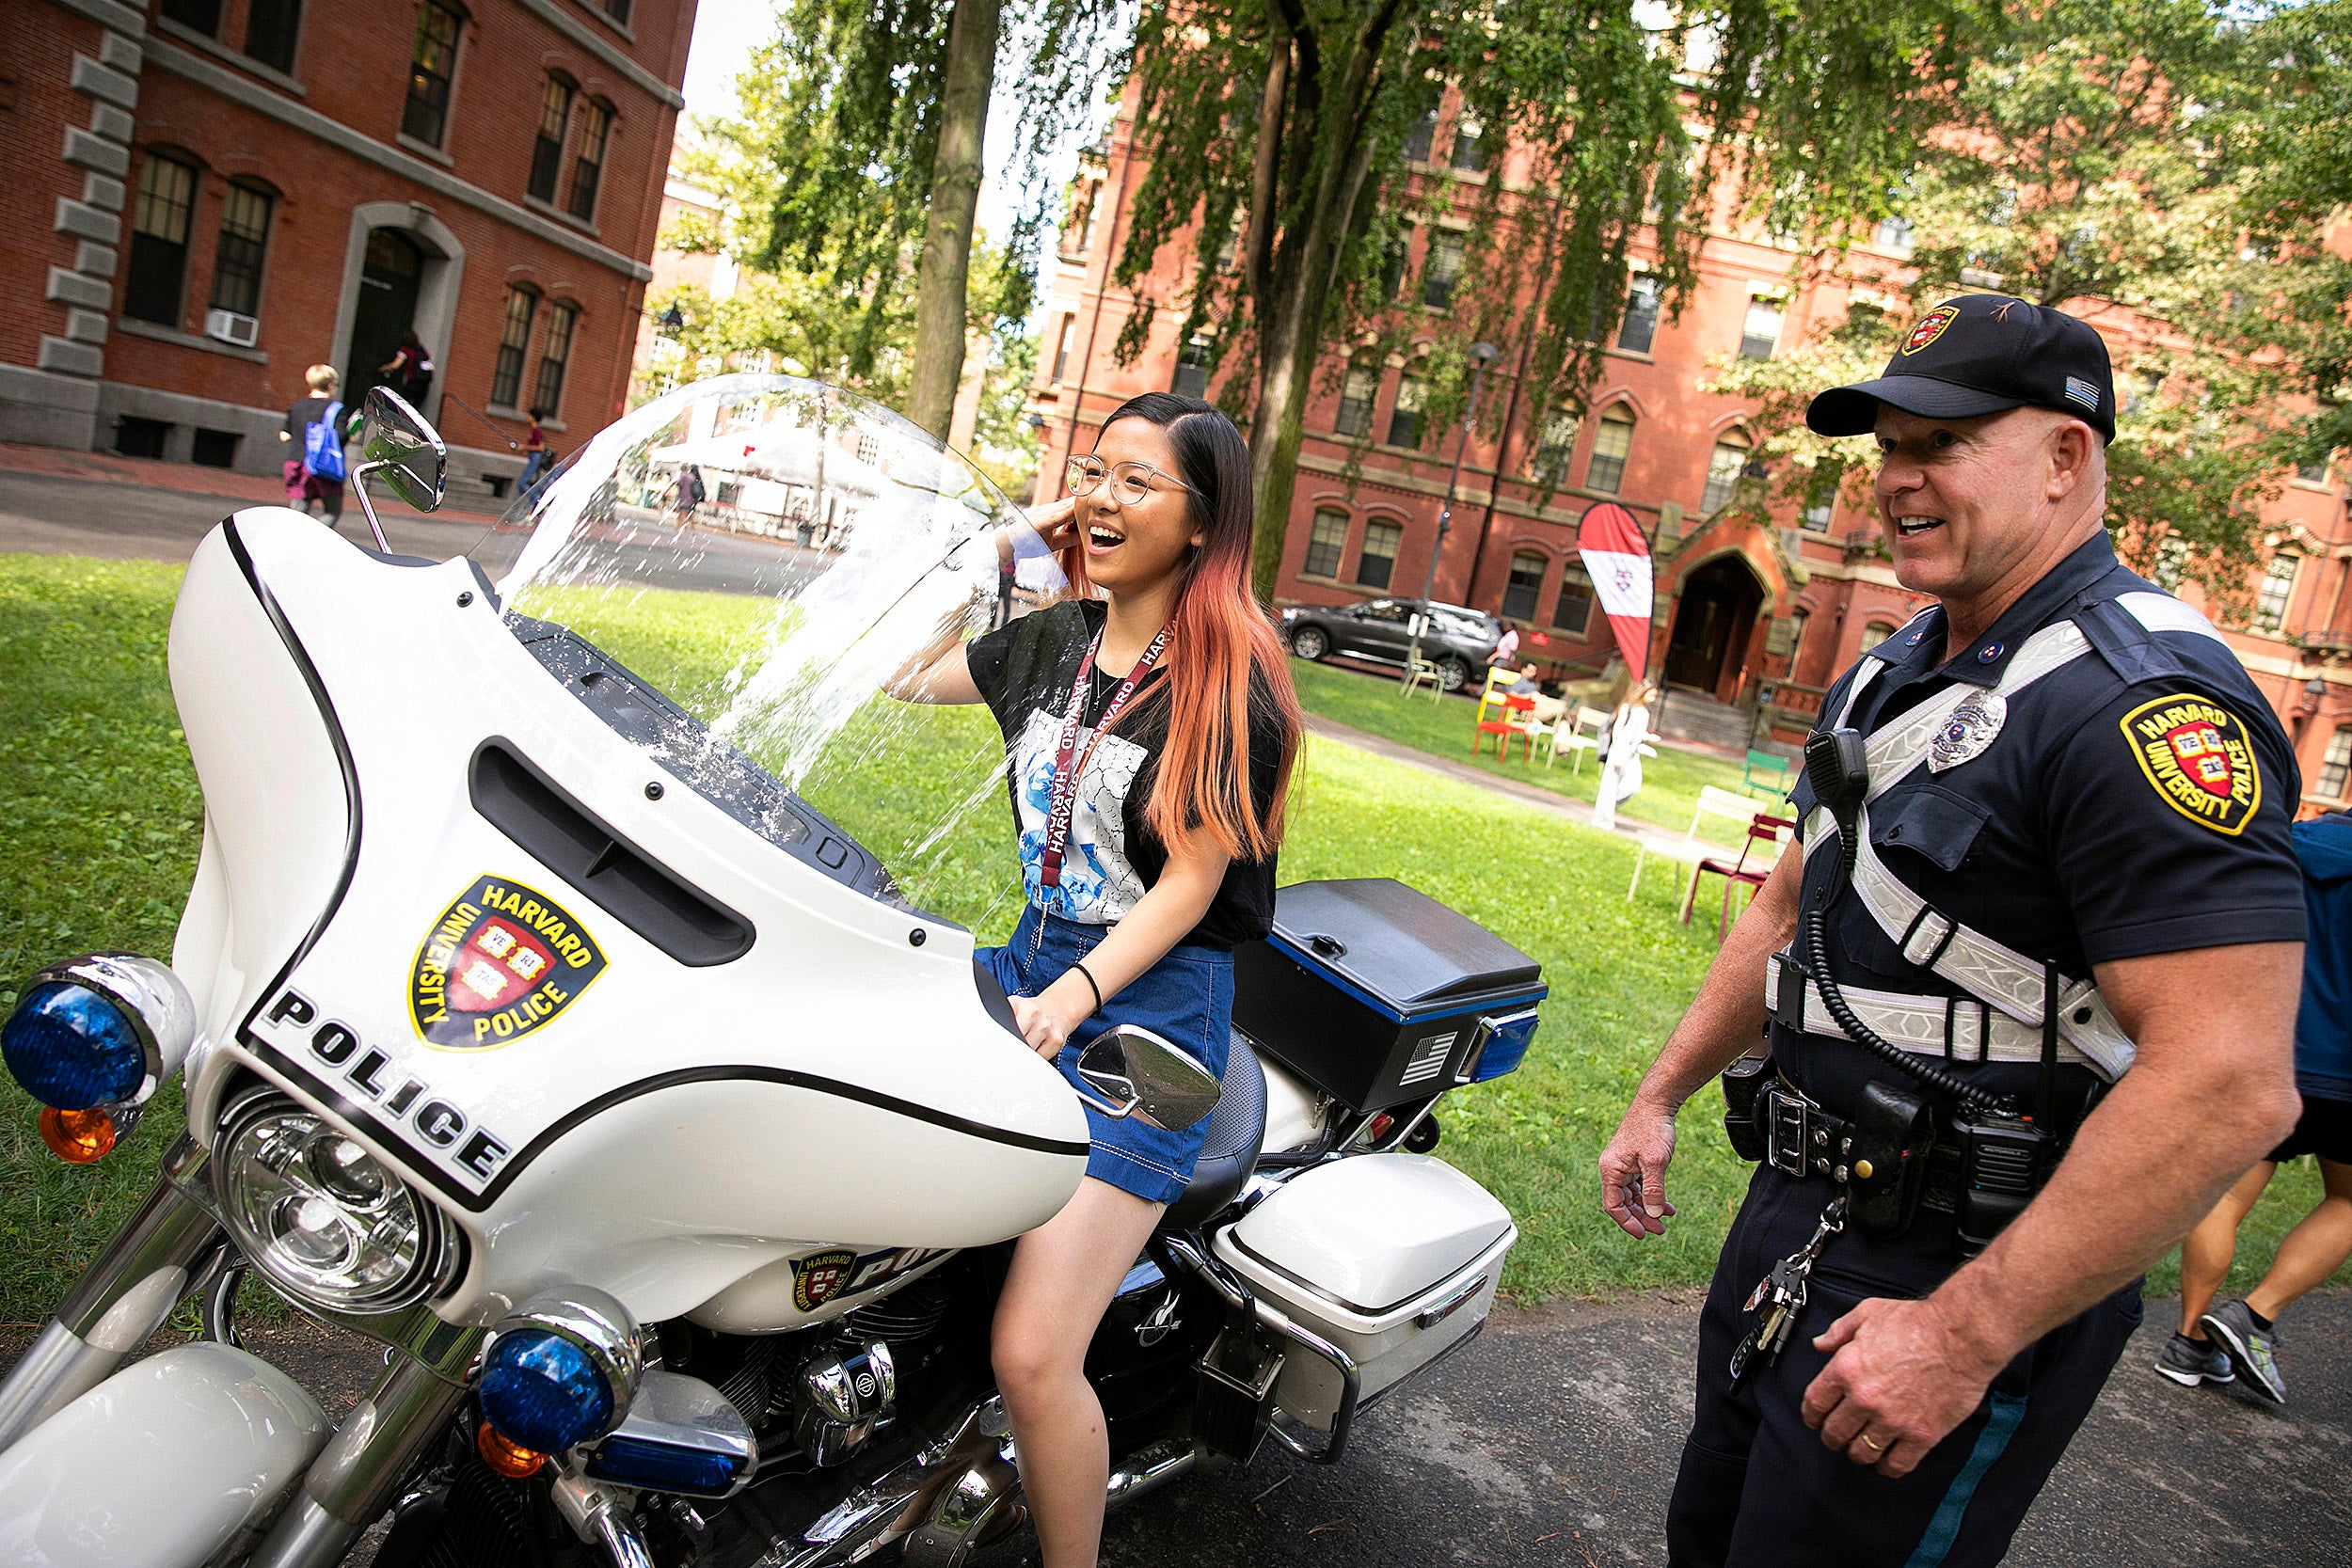 Student sits on police motorcycle, with the officer standing by.